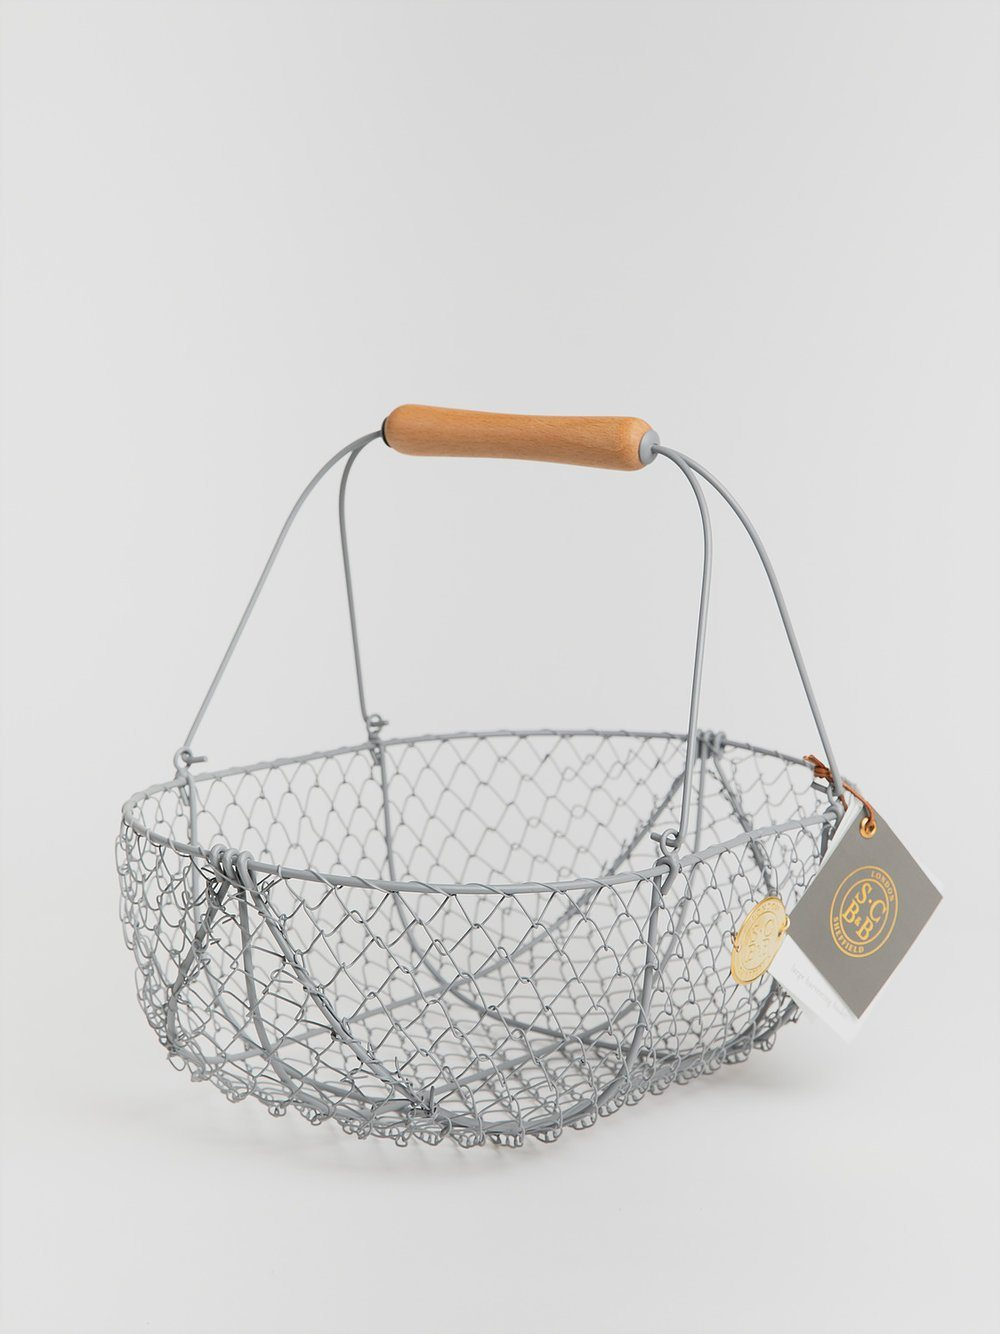 Metal Basket Baskets Burgon & Ball